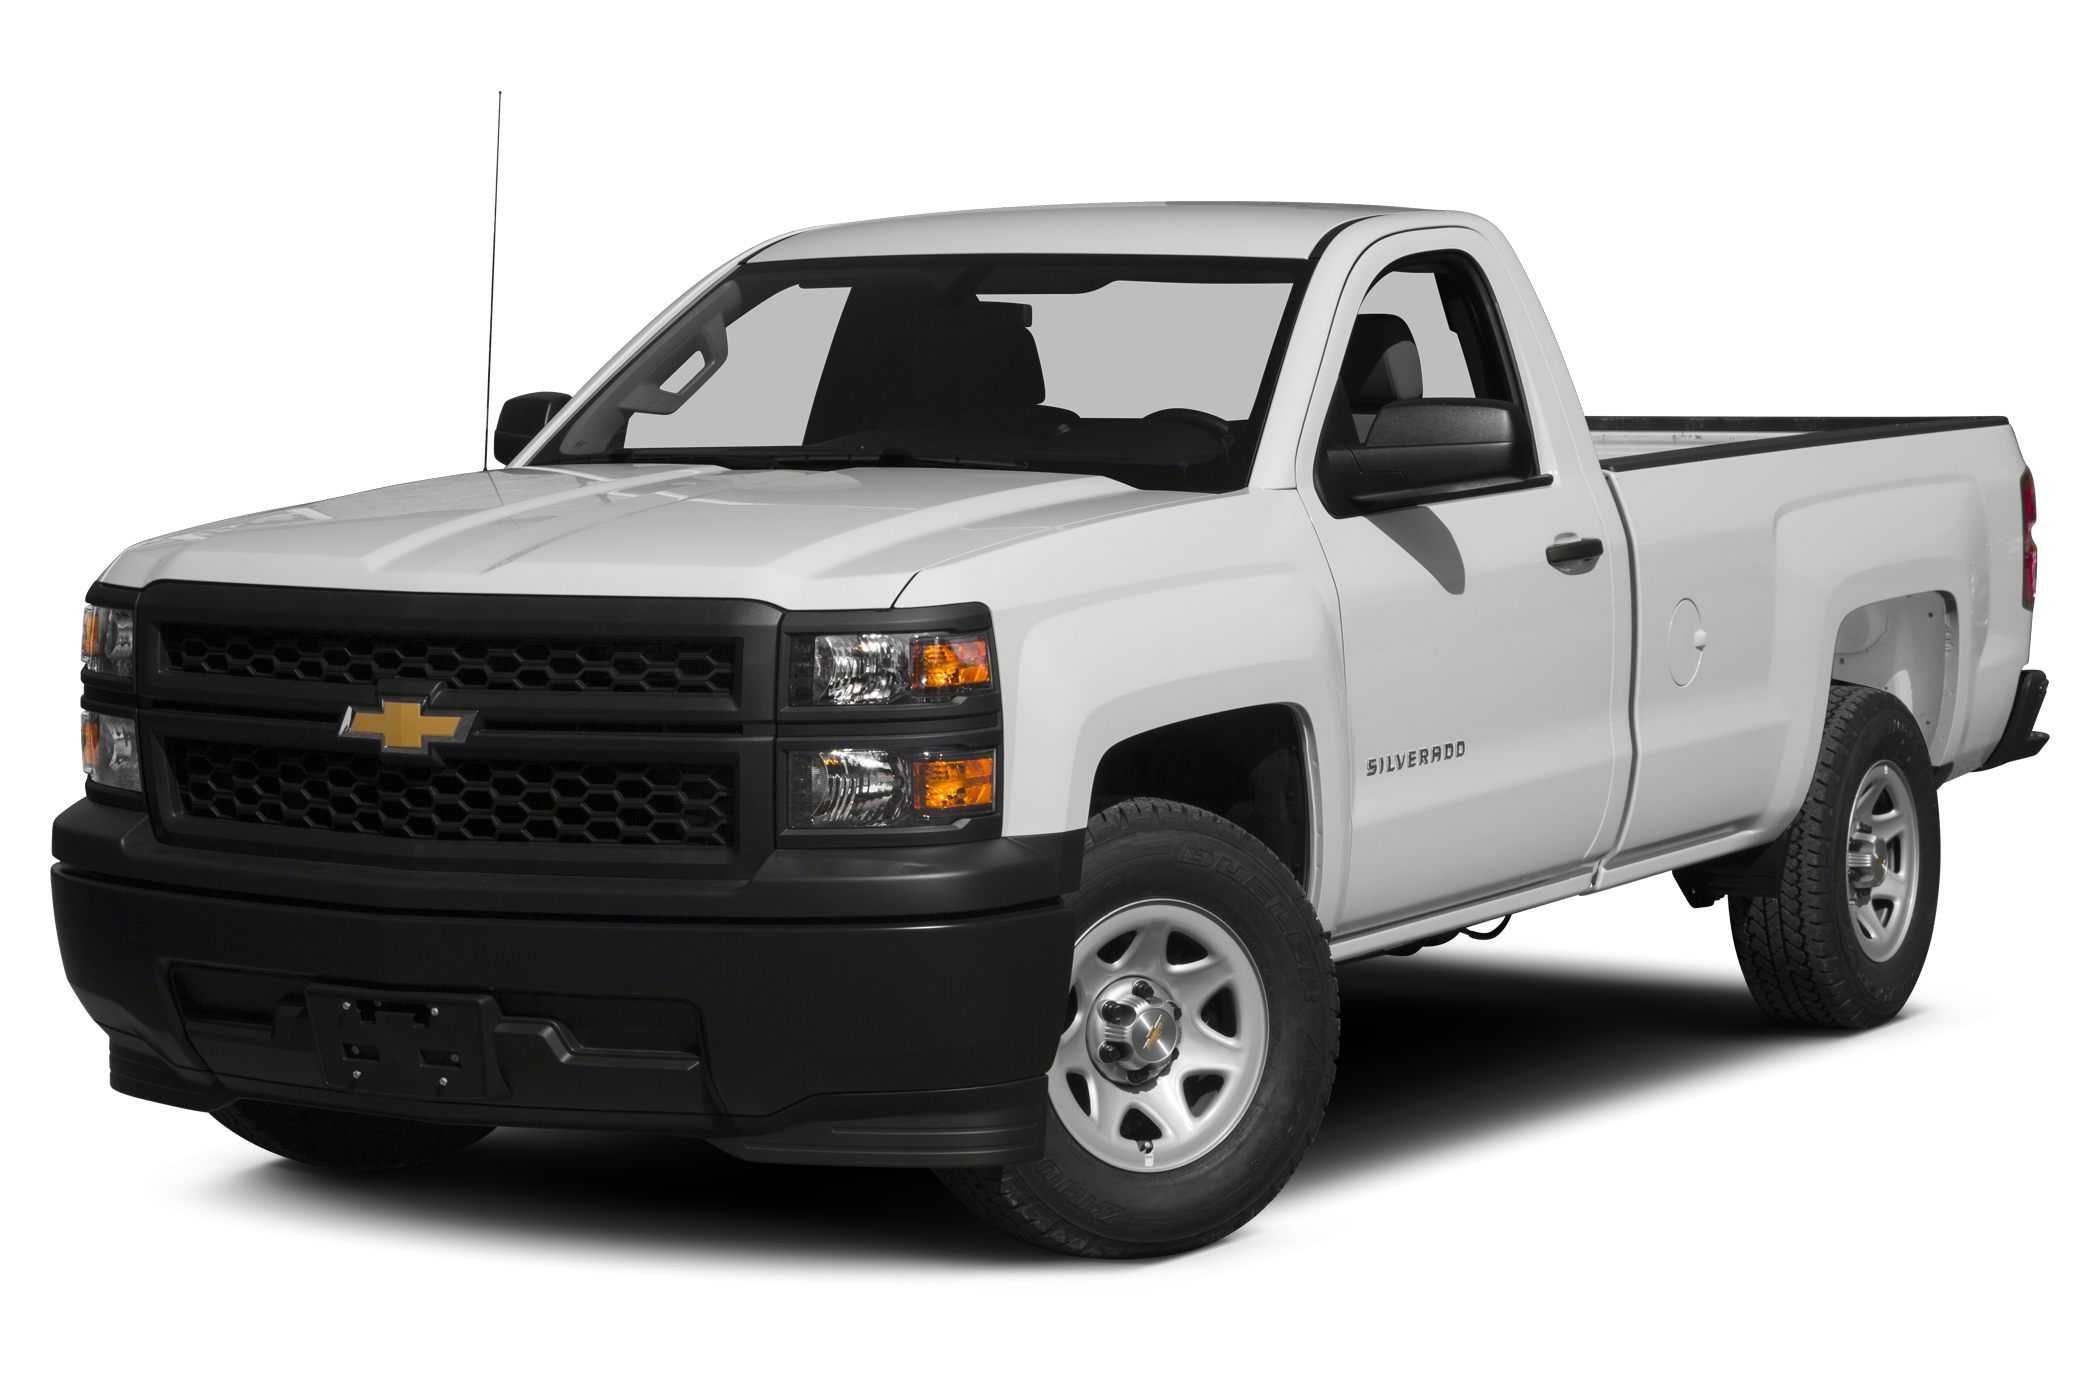 2015 Chevrolet Silverado 1500 WT Regular Cab Pickup for sale in Detroit Lakes for $34,730 with 3 miles.